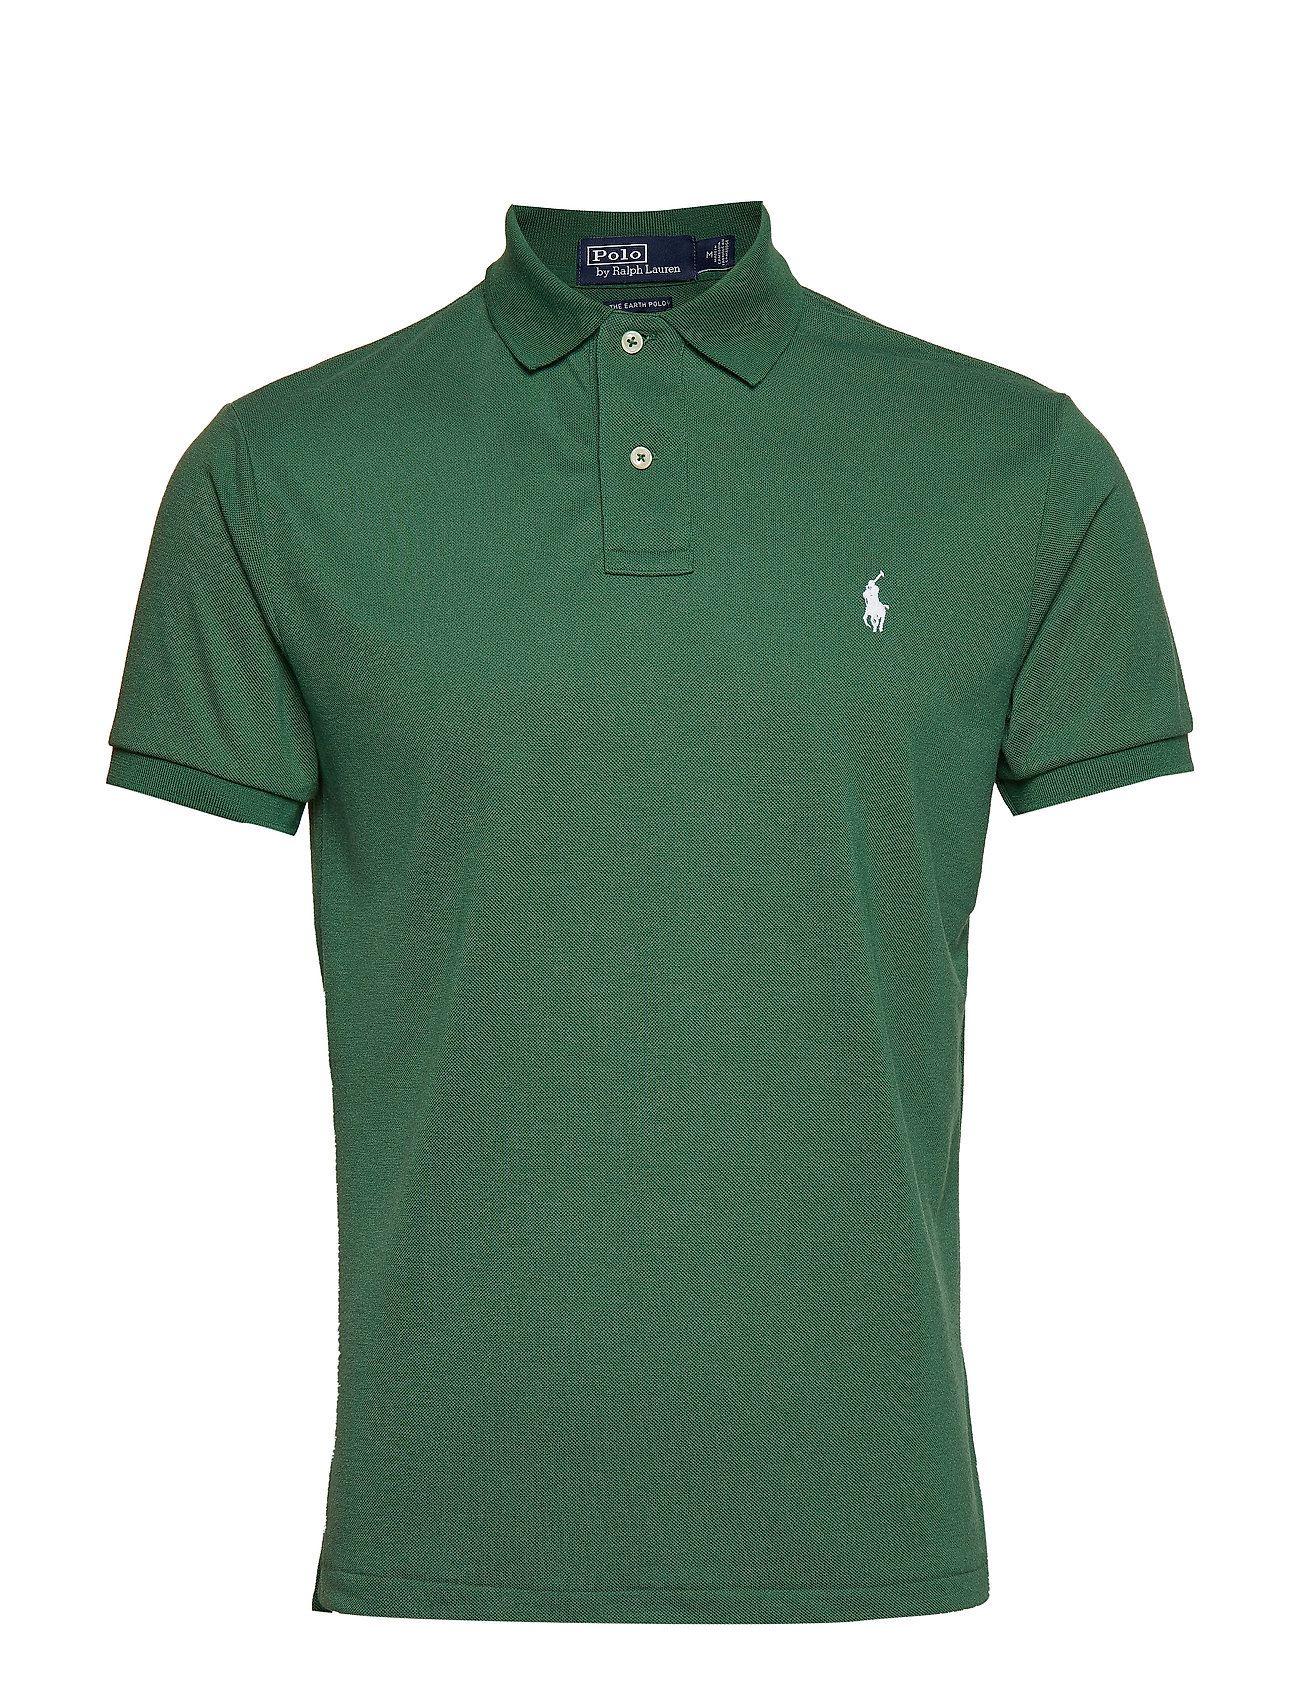 Polo Ralph Lauren The Earth Polo Shirt